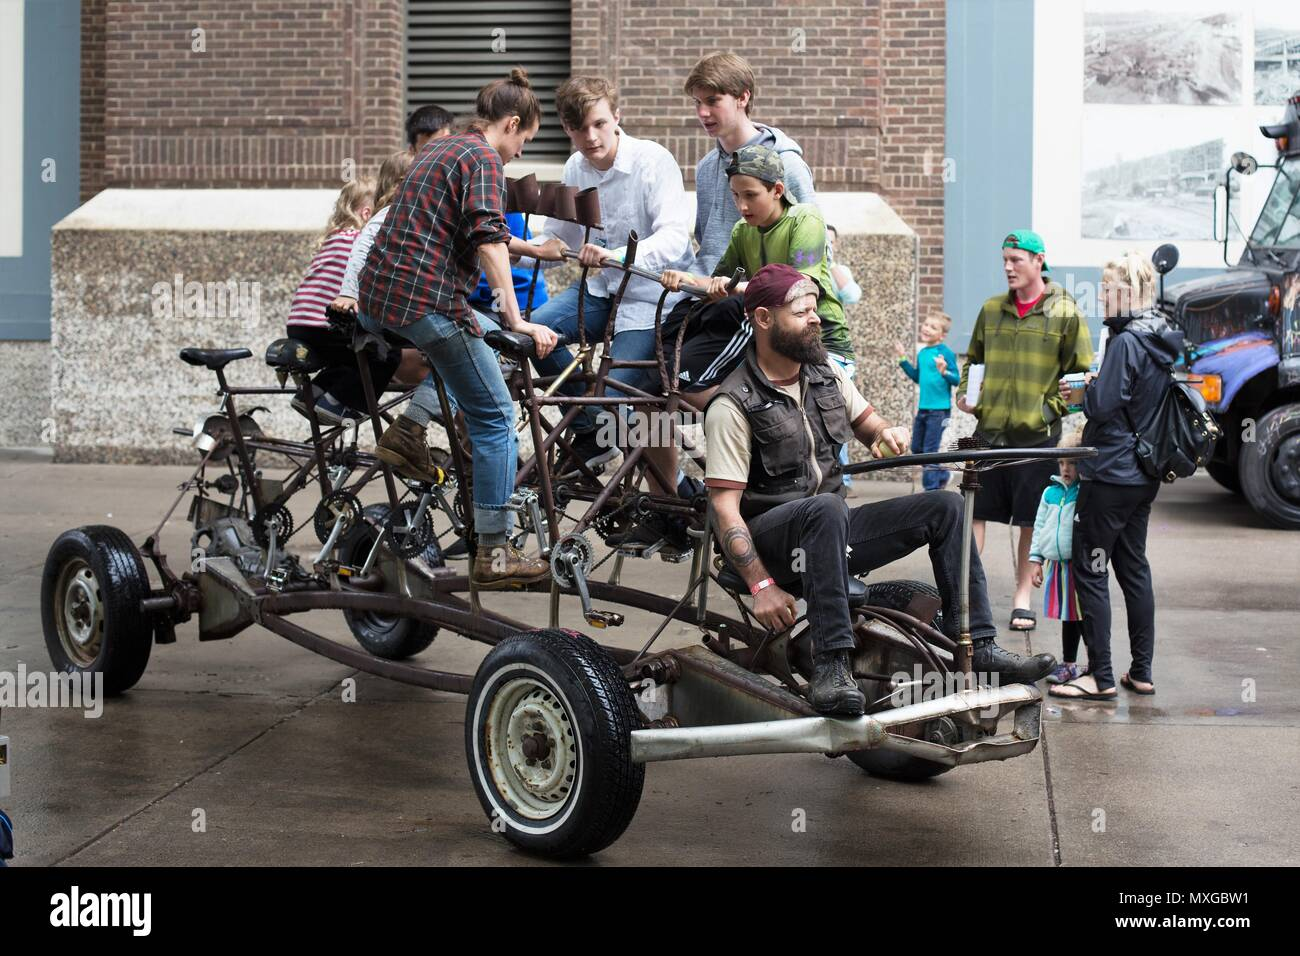 People pedaling a bike car, called the Pedal Cloud, at the